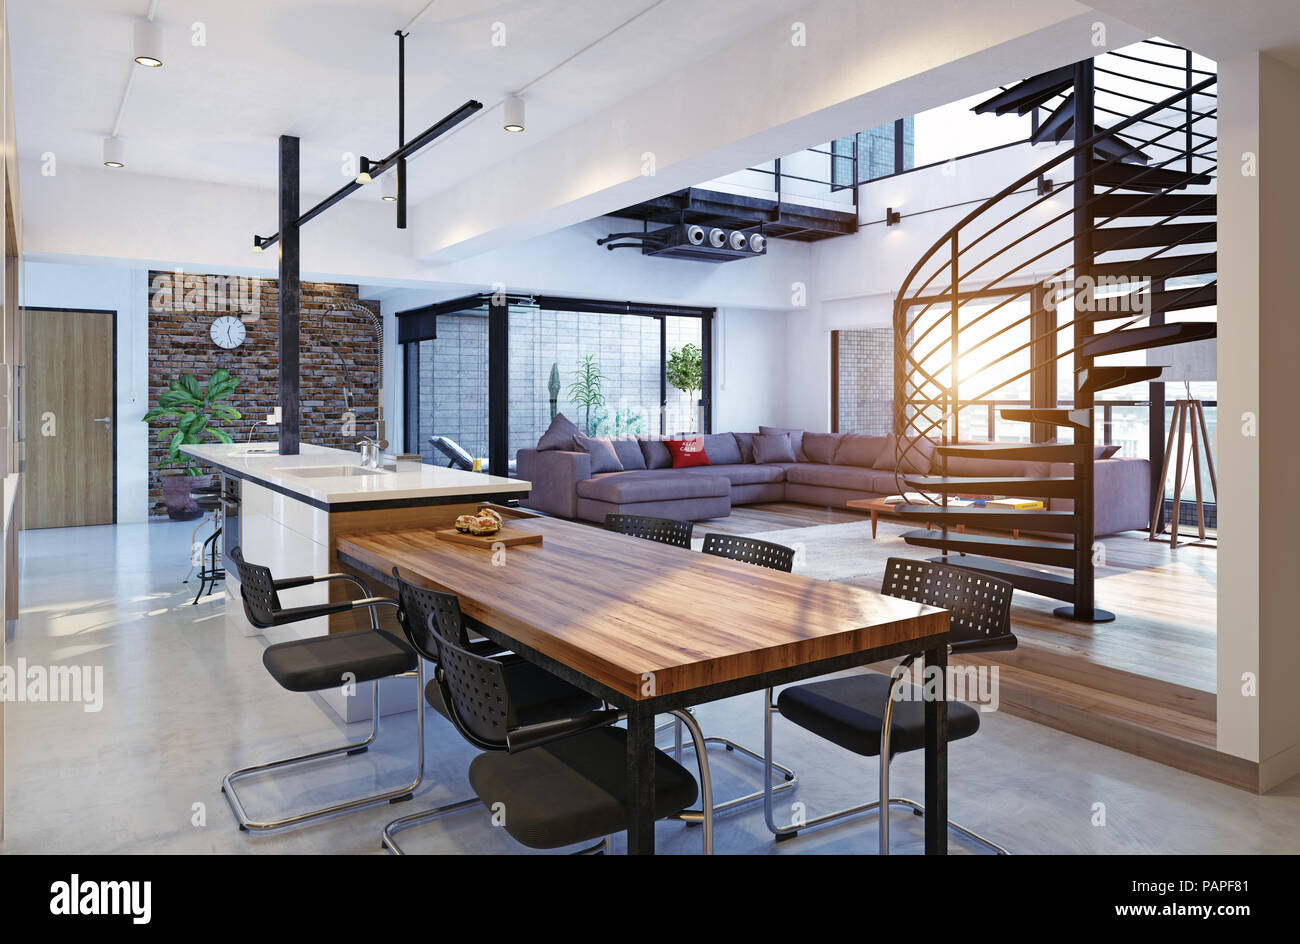 Luxury Modern Loft Apartment Interior 3d Rendering Concept Stock Photo Alamy